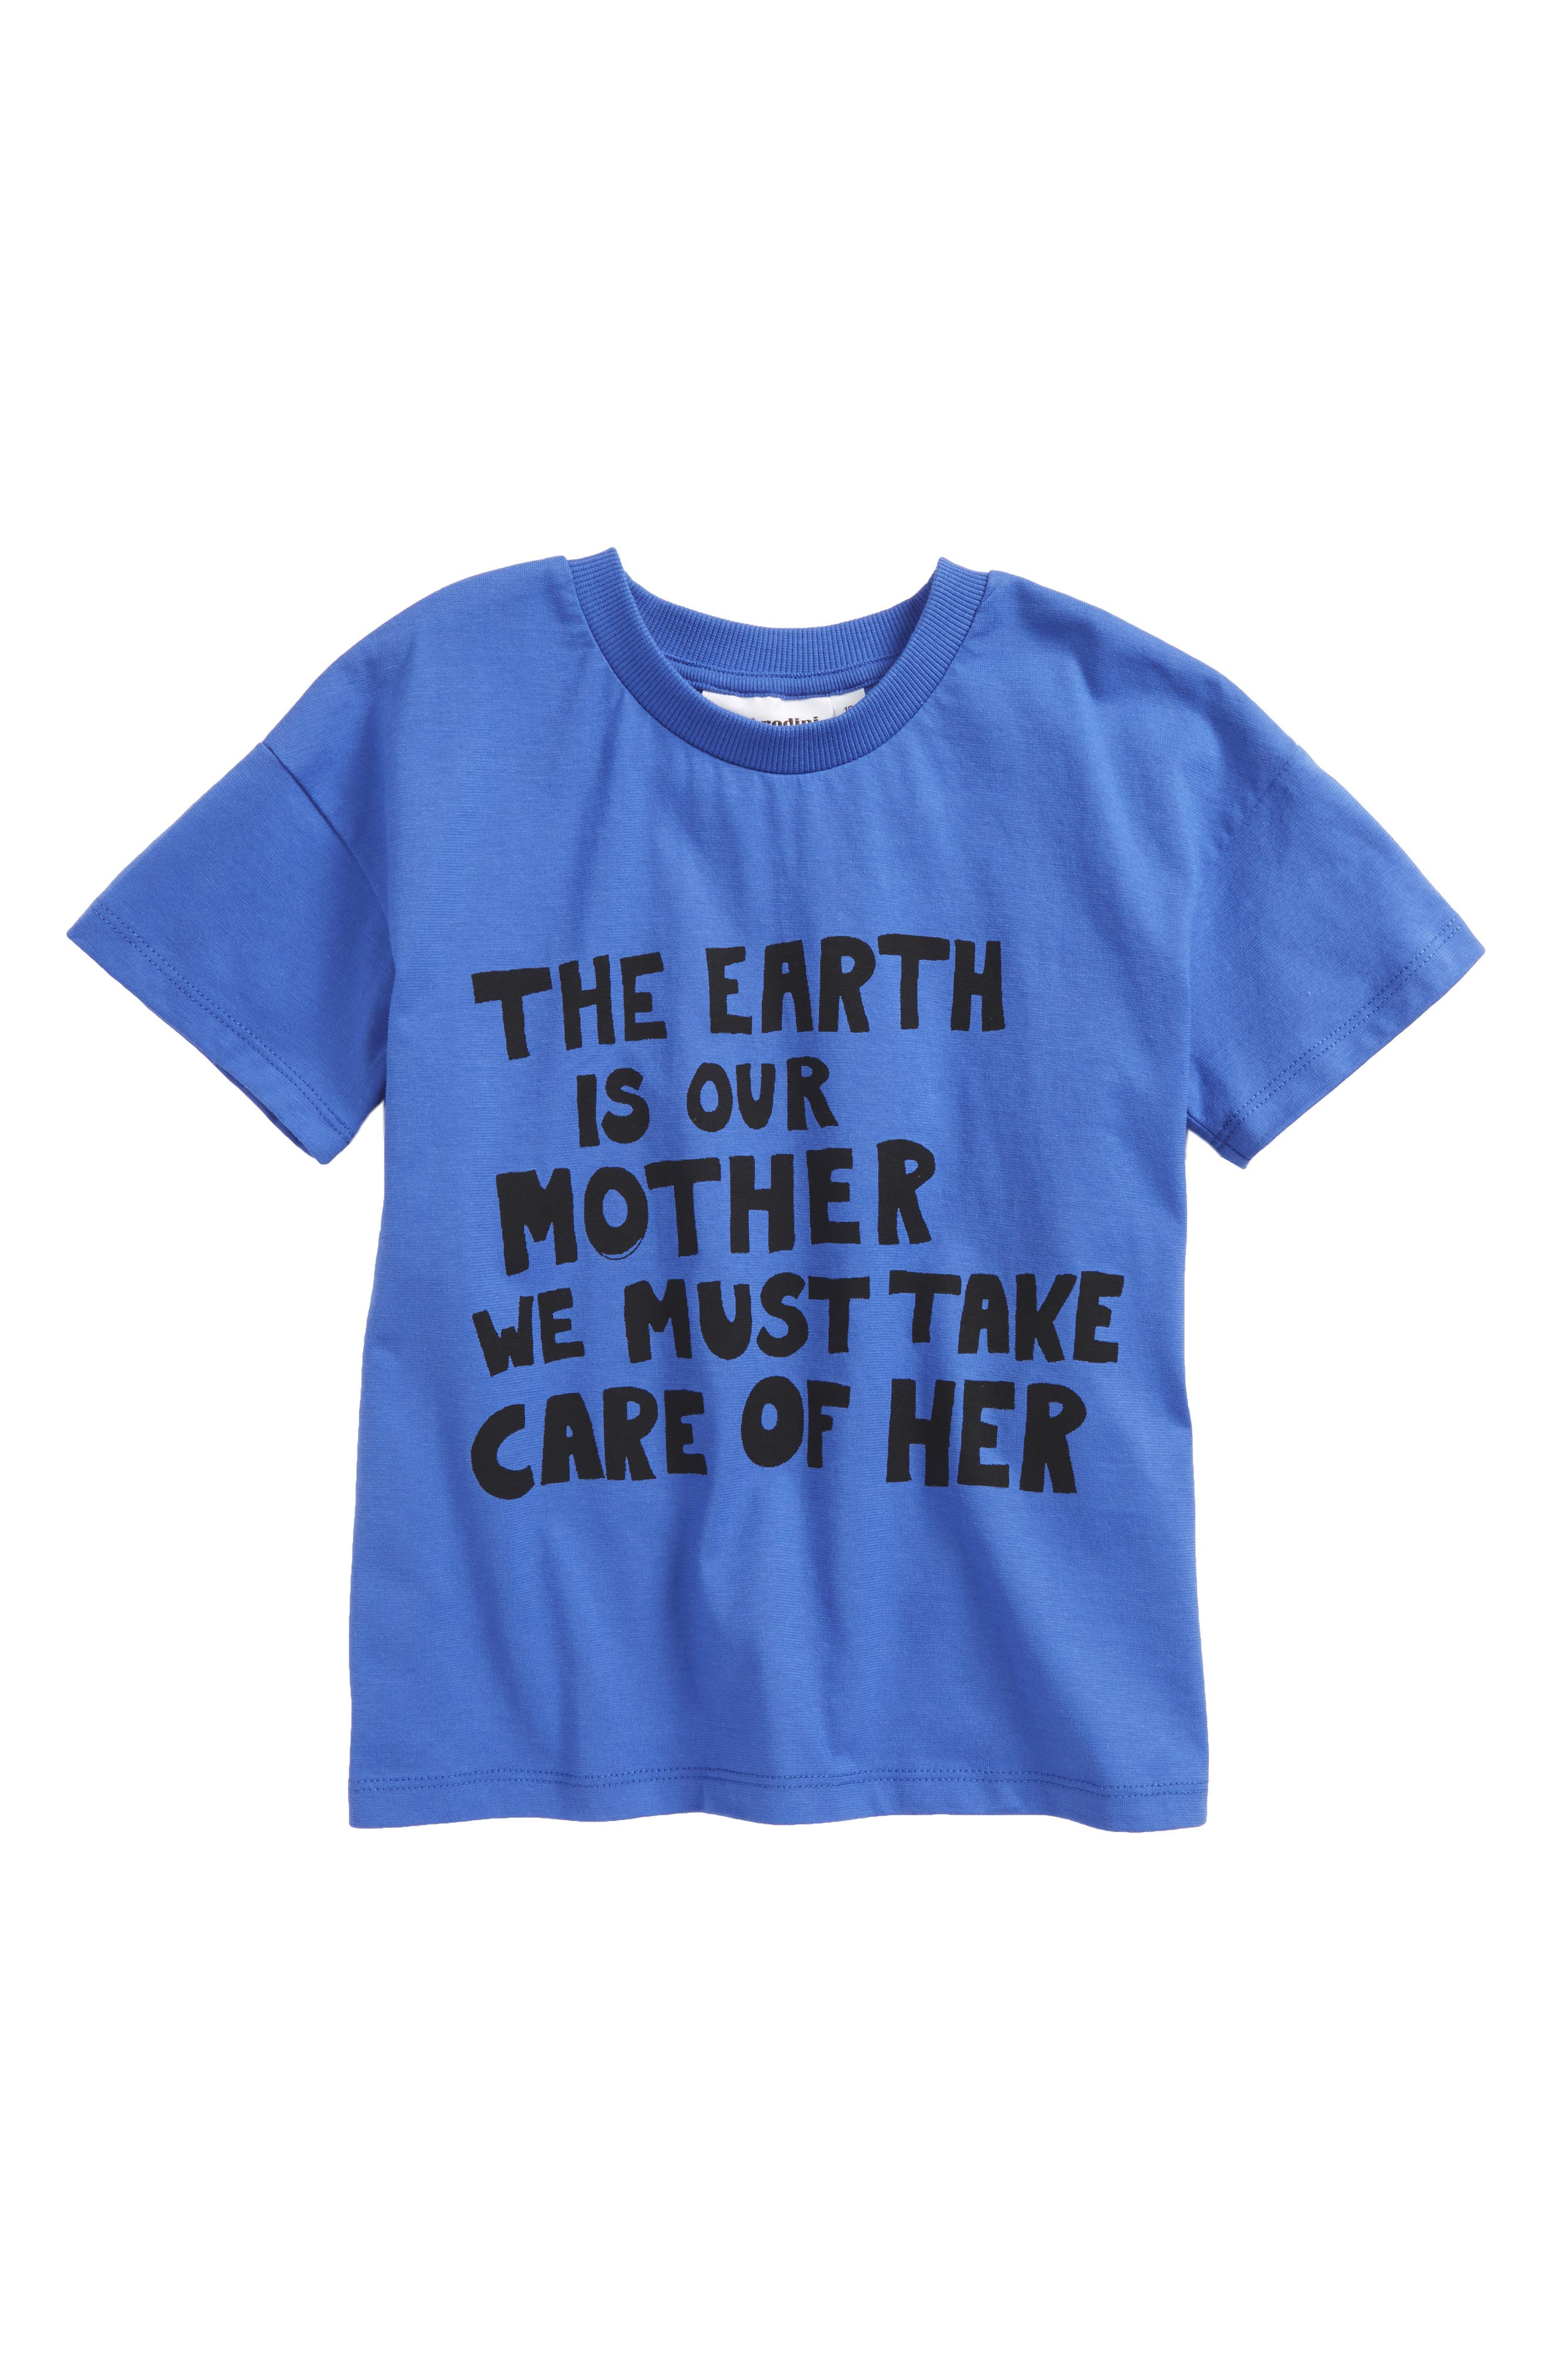 The Earth Is Our Mother Graphic T-Shirt,                             Main thumbnail 1, color,                             Blue